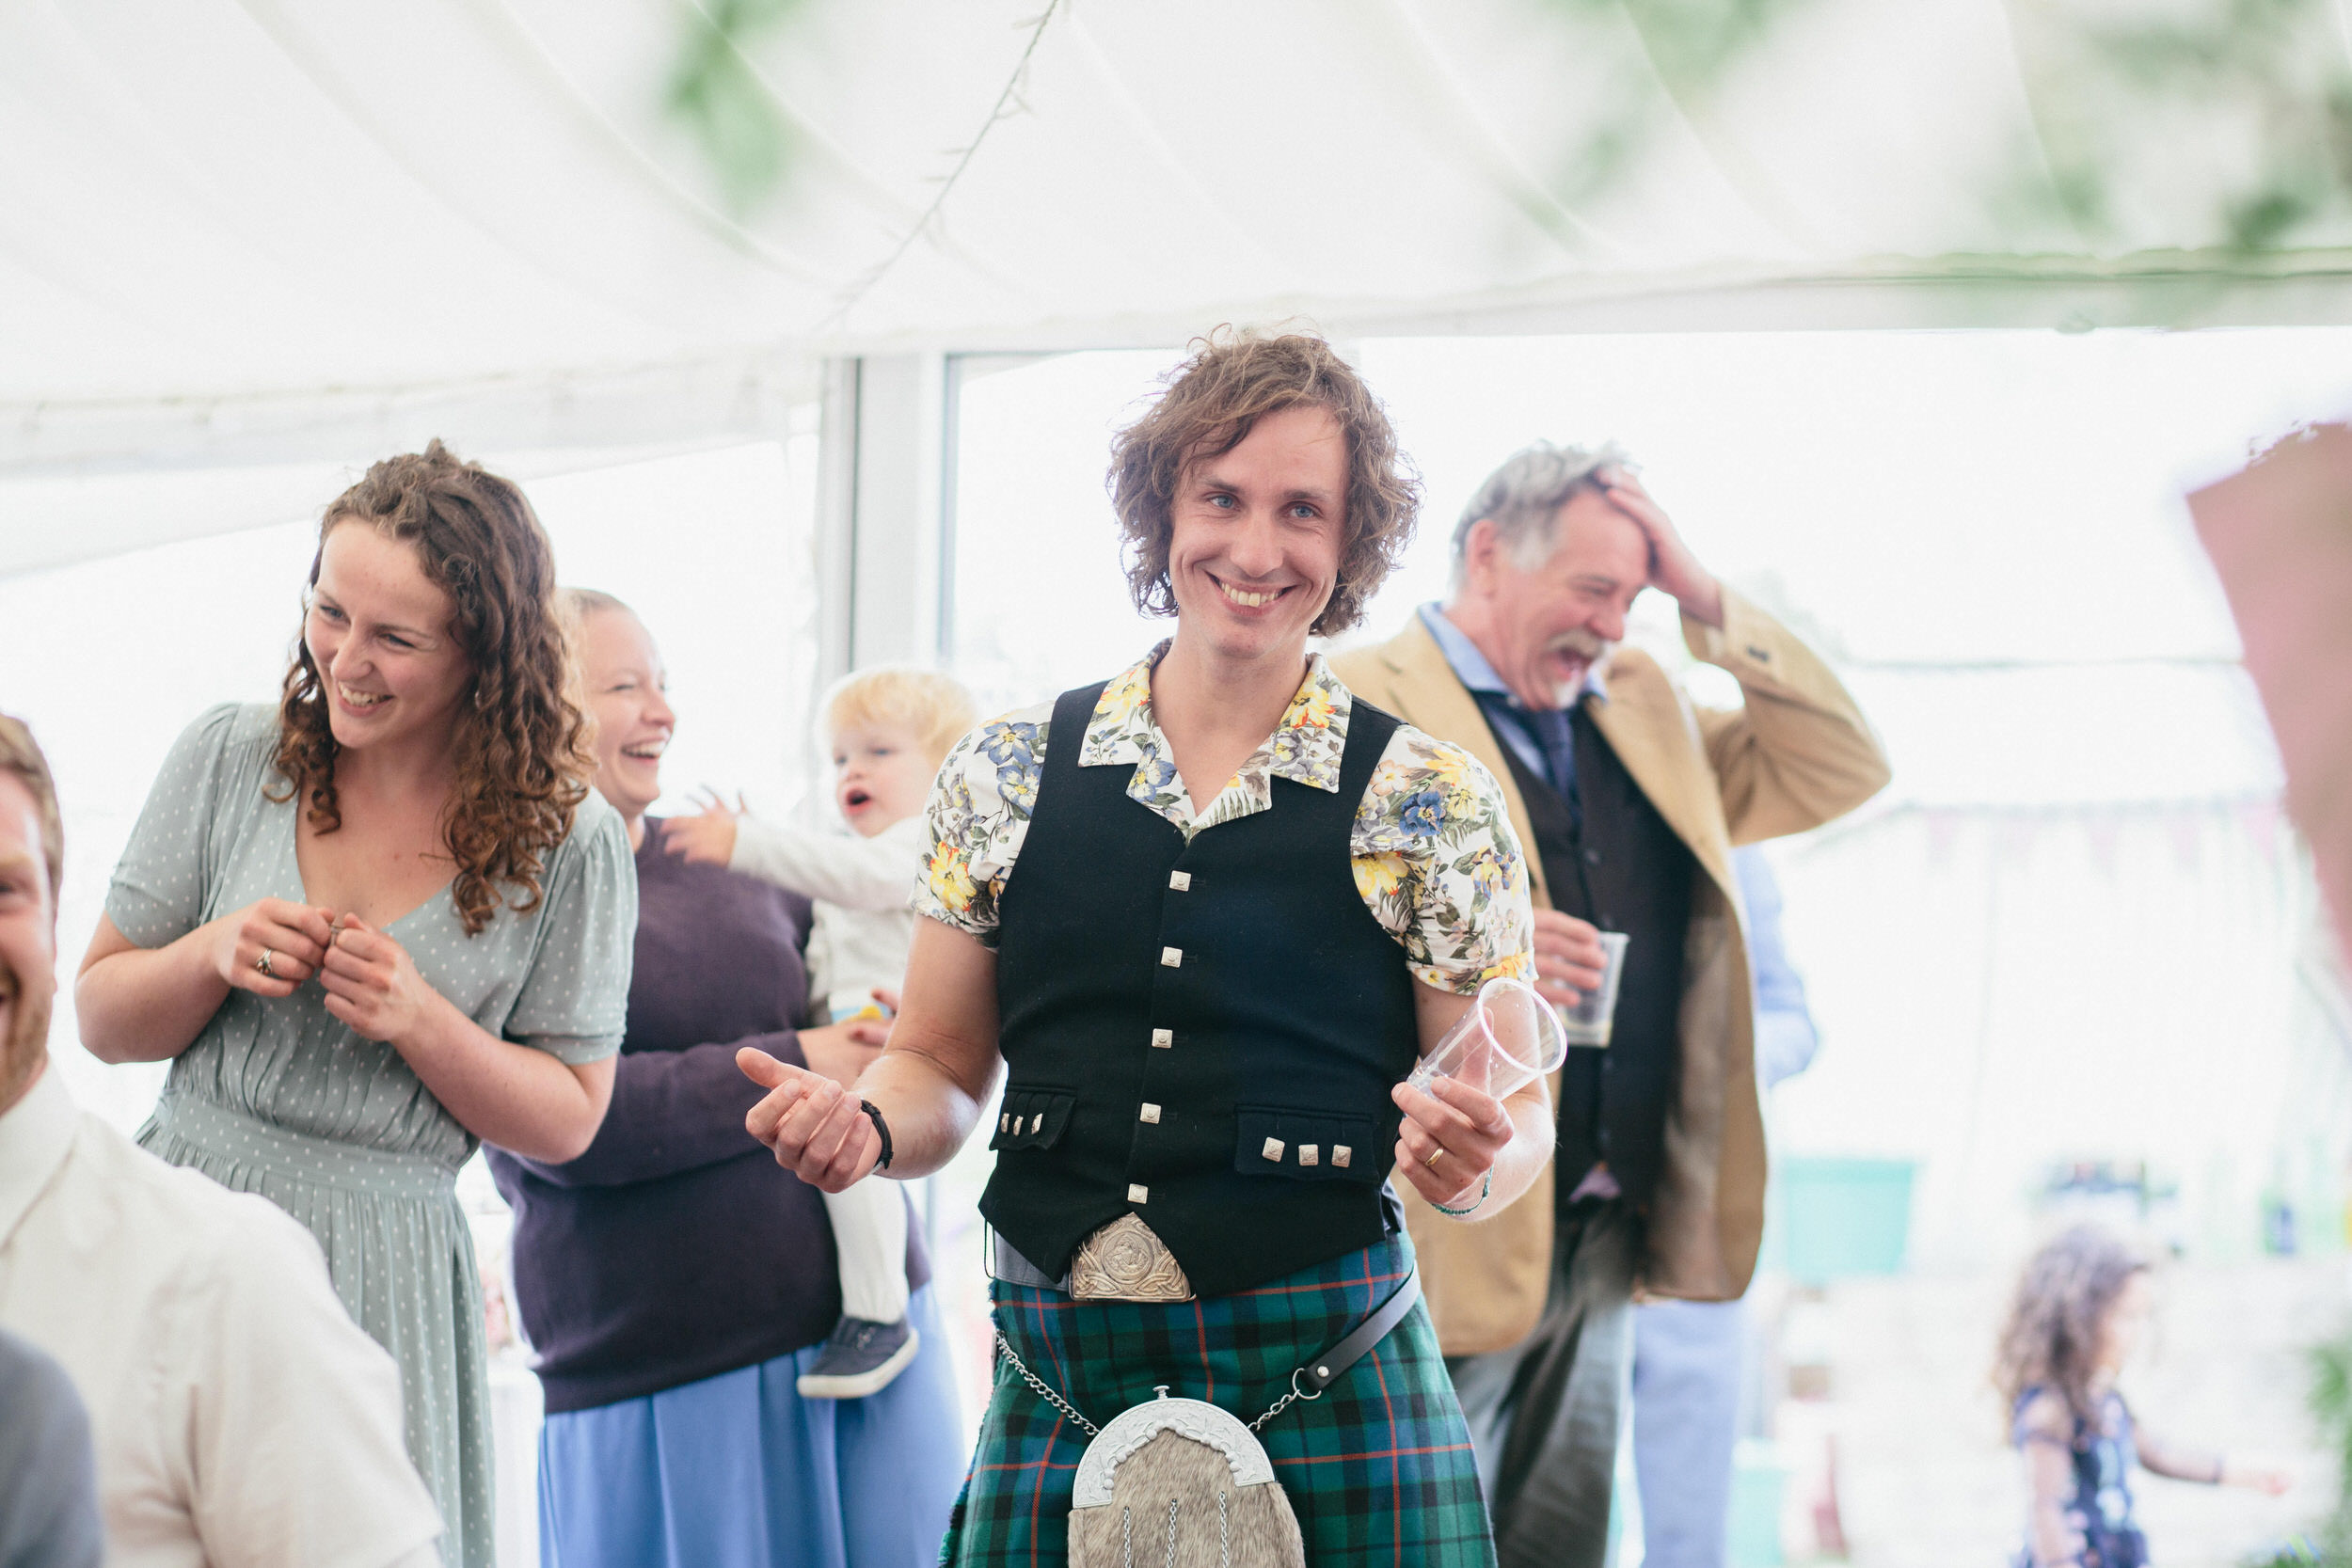 Alternative Quirky Wedding Photographer Scotland Borders Edinburgh 128.jpg